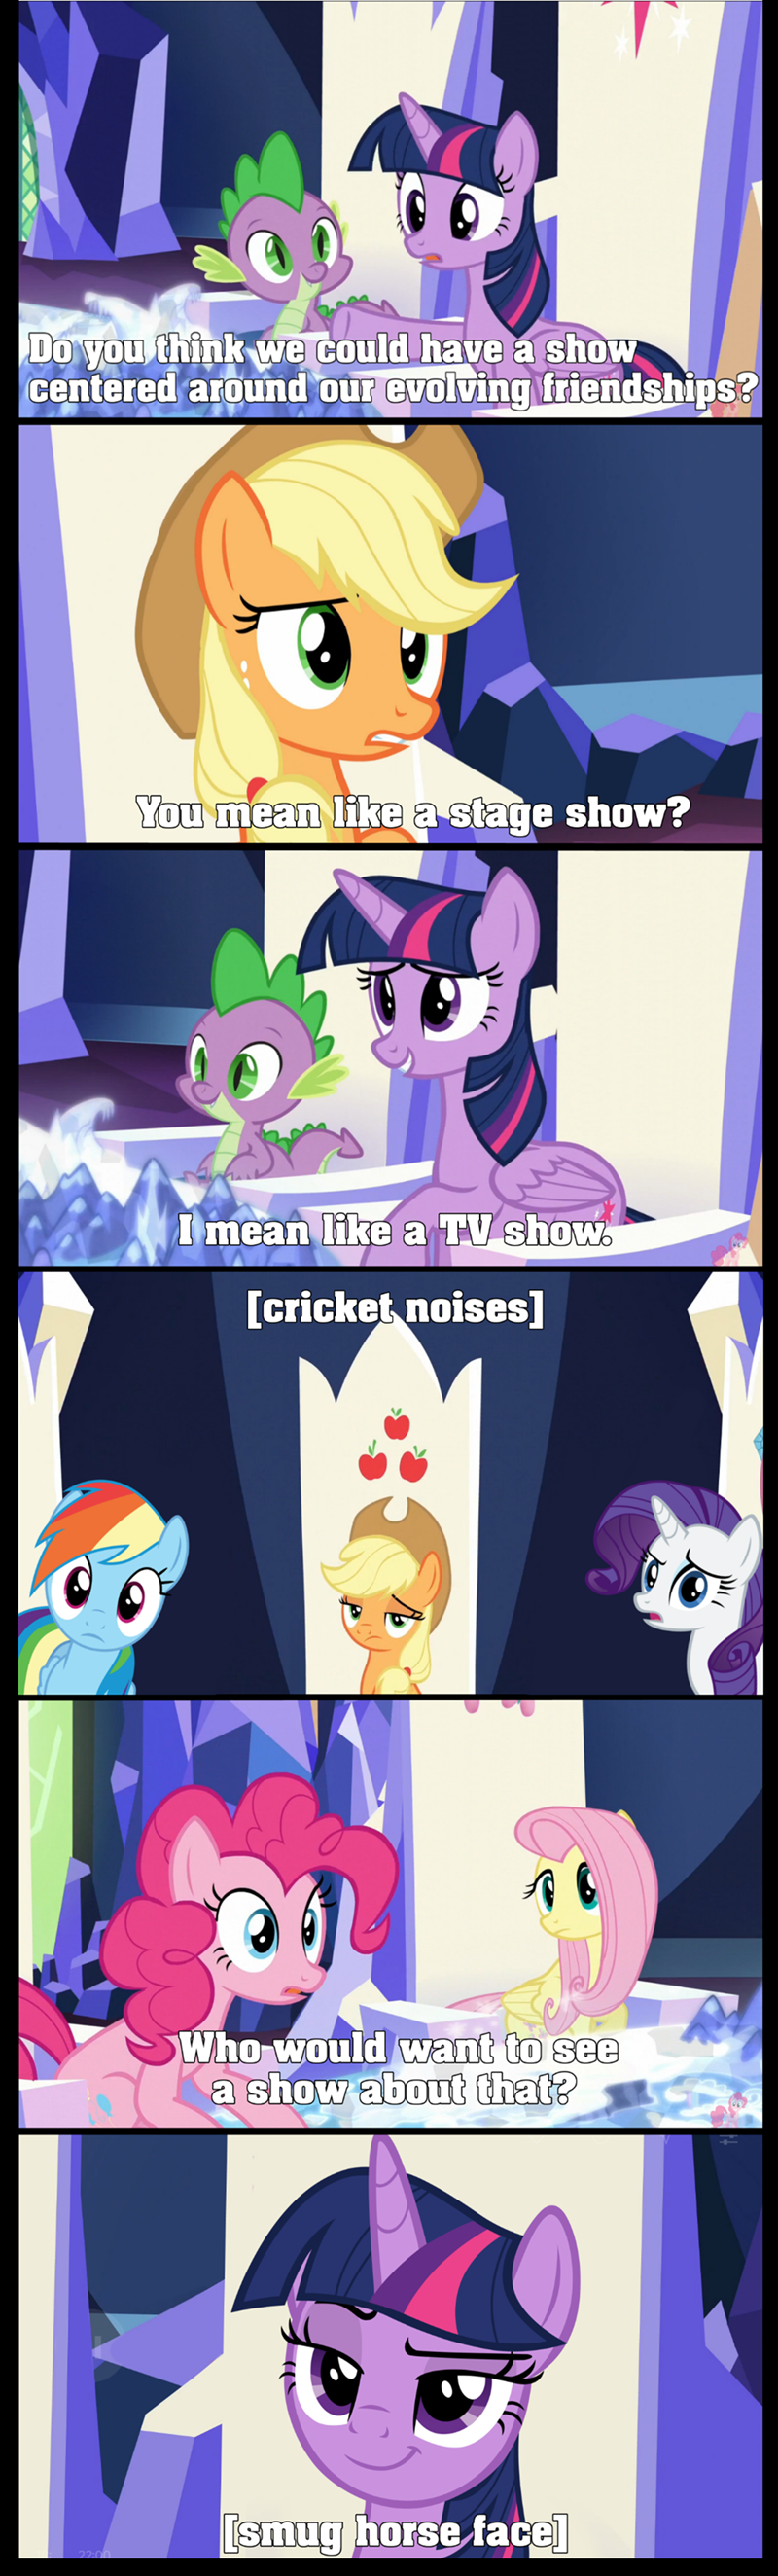 spike applejack fourth wall twilight sparkle screencap pinkie pie rarity comic fluttershy rainbow dash - 9259117824